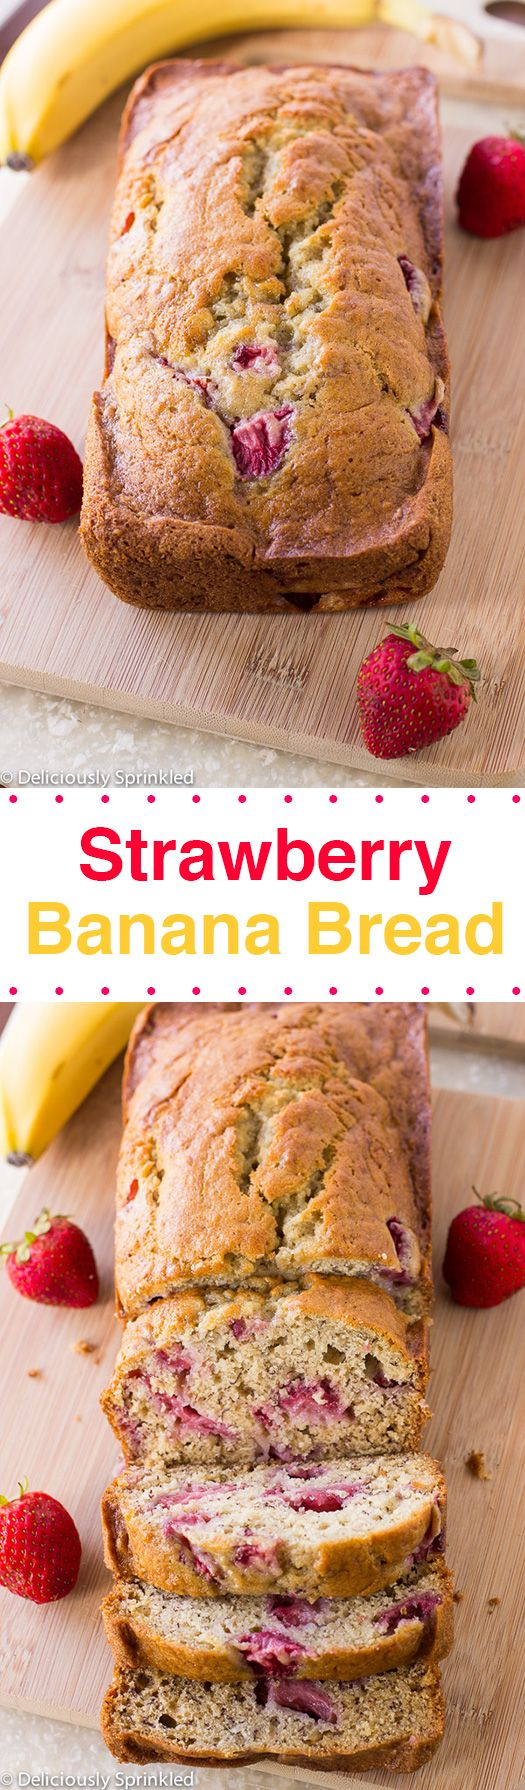 ~~The BEST Strawberry Banana Bread | This bread is a simple to make quick bread perfect for breakfast or as a snack! I love banana bread but when you add fresh strawberries it takes this bread to a whole new level of deliciousness! And when this bread is baking in the oven, it makes your house smell amazing! | The Recipe Critic~~